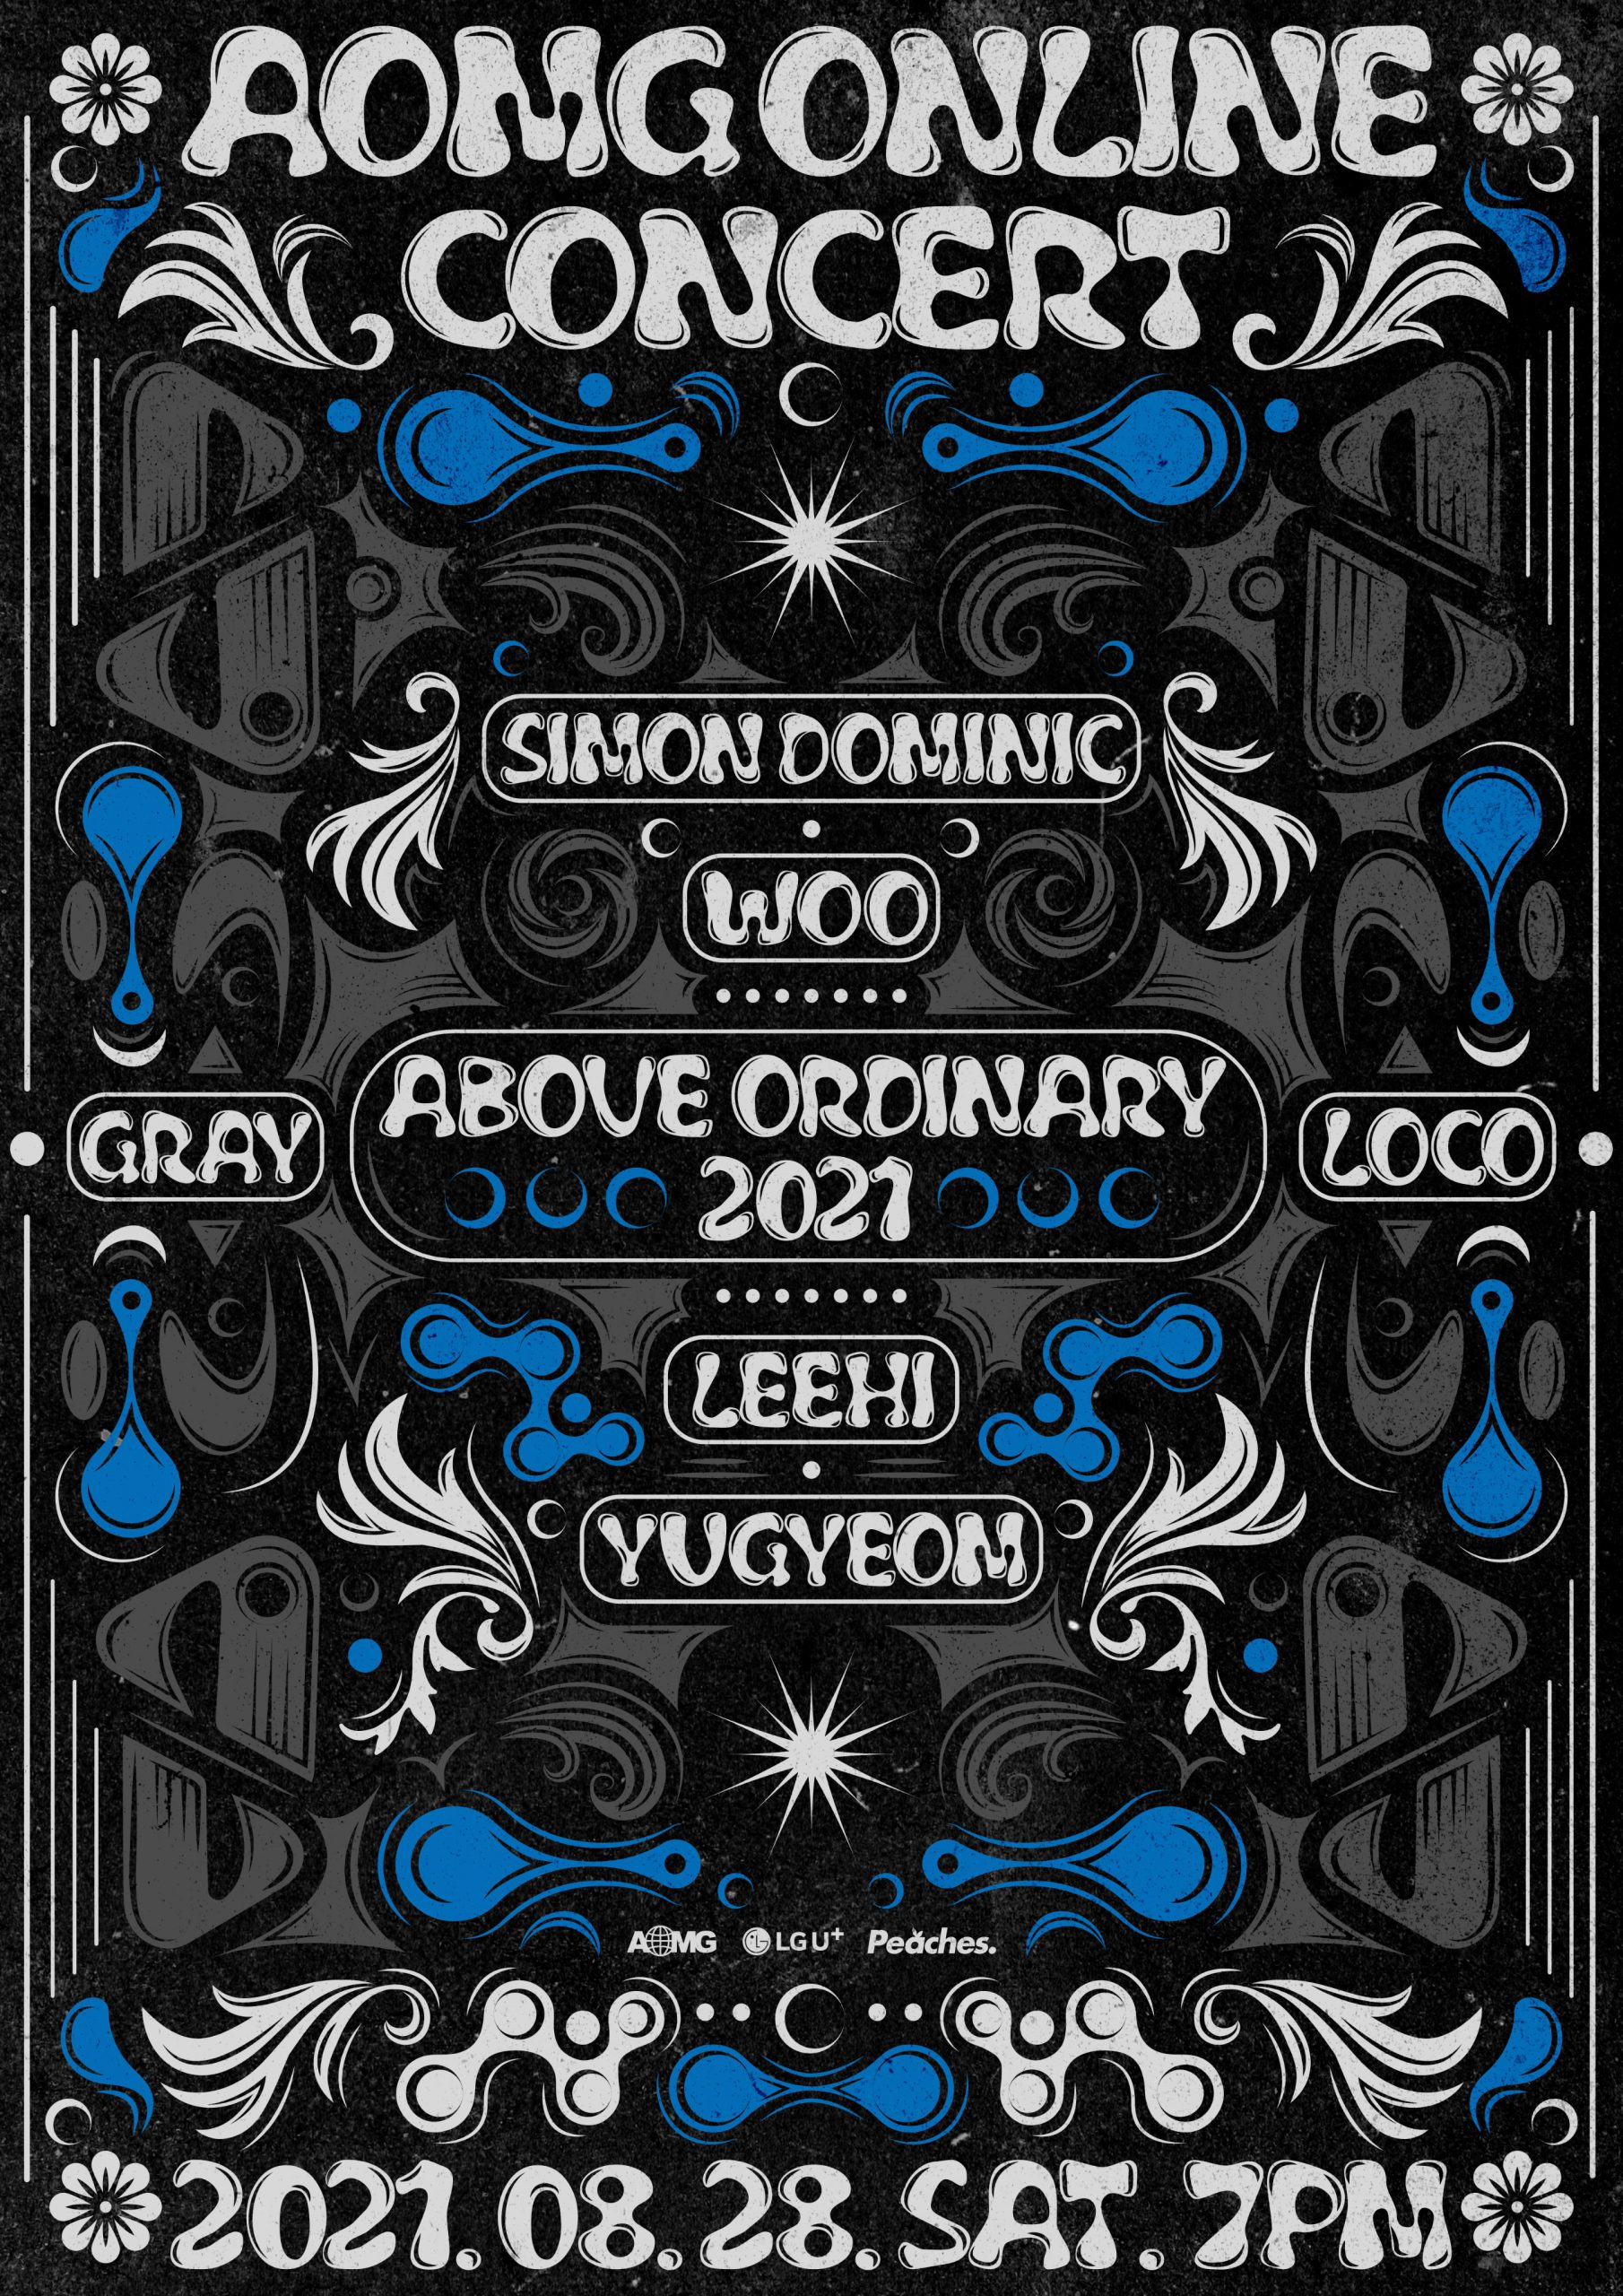 Event poster for AOMG ONLINE CONCERT : Above Ordinary 2021